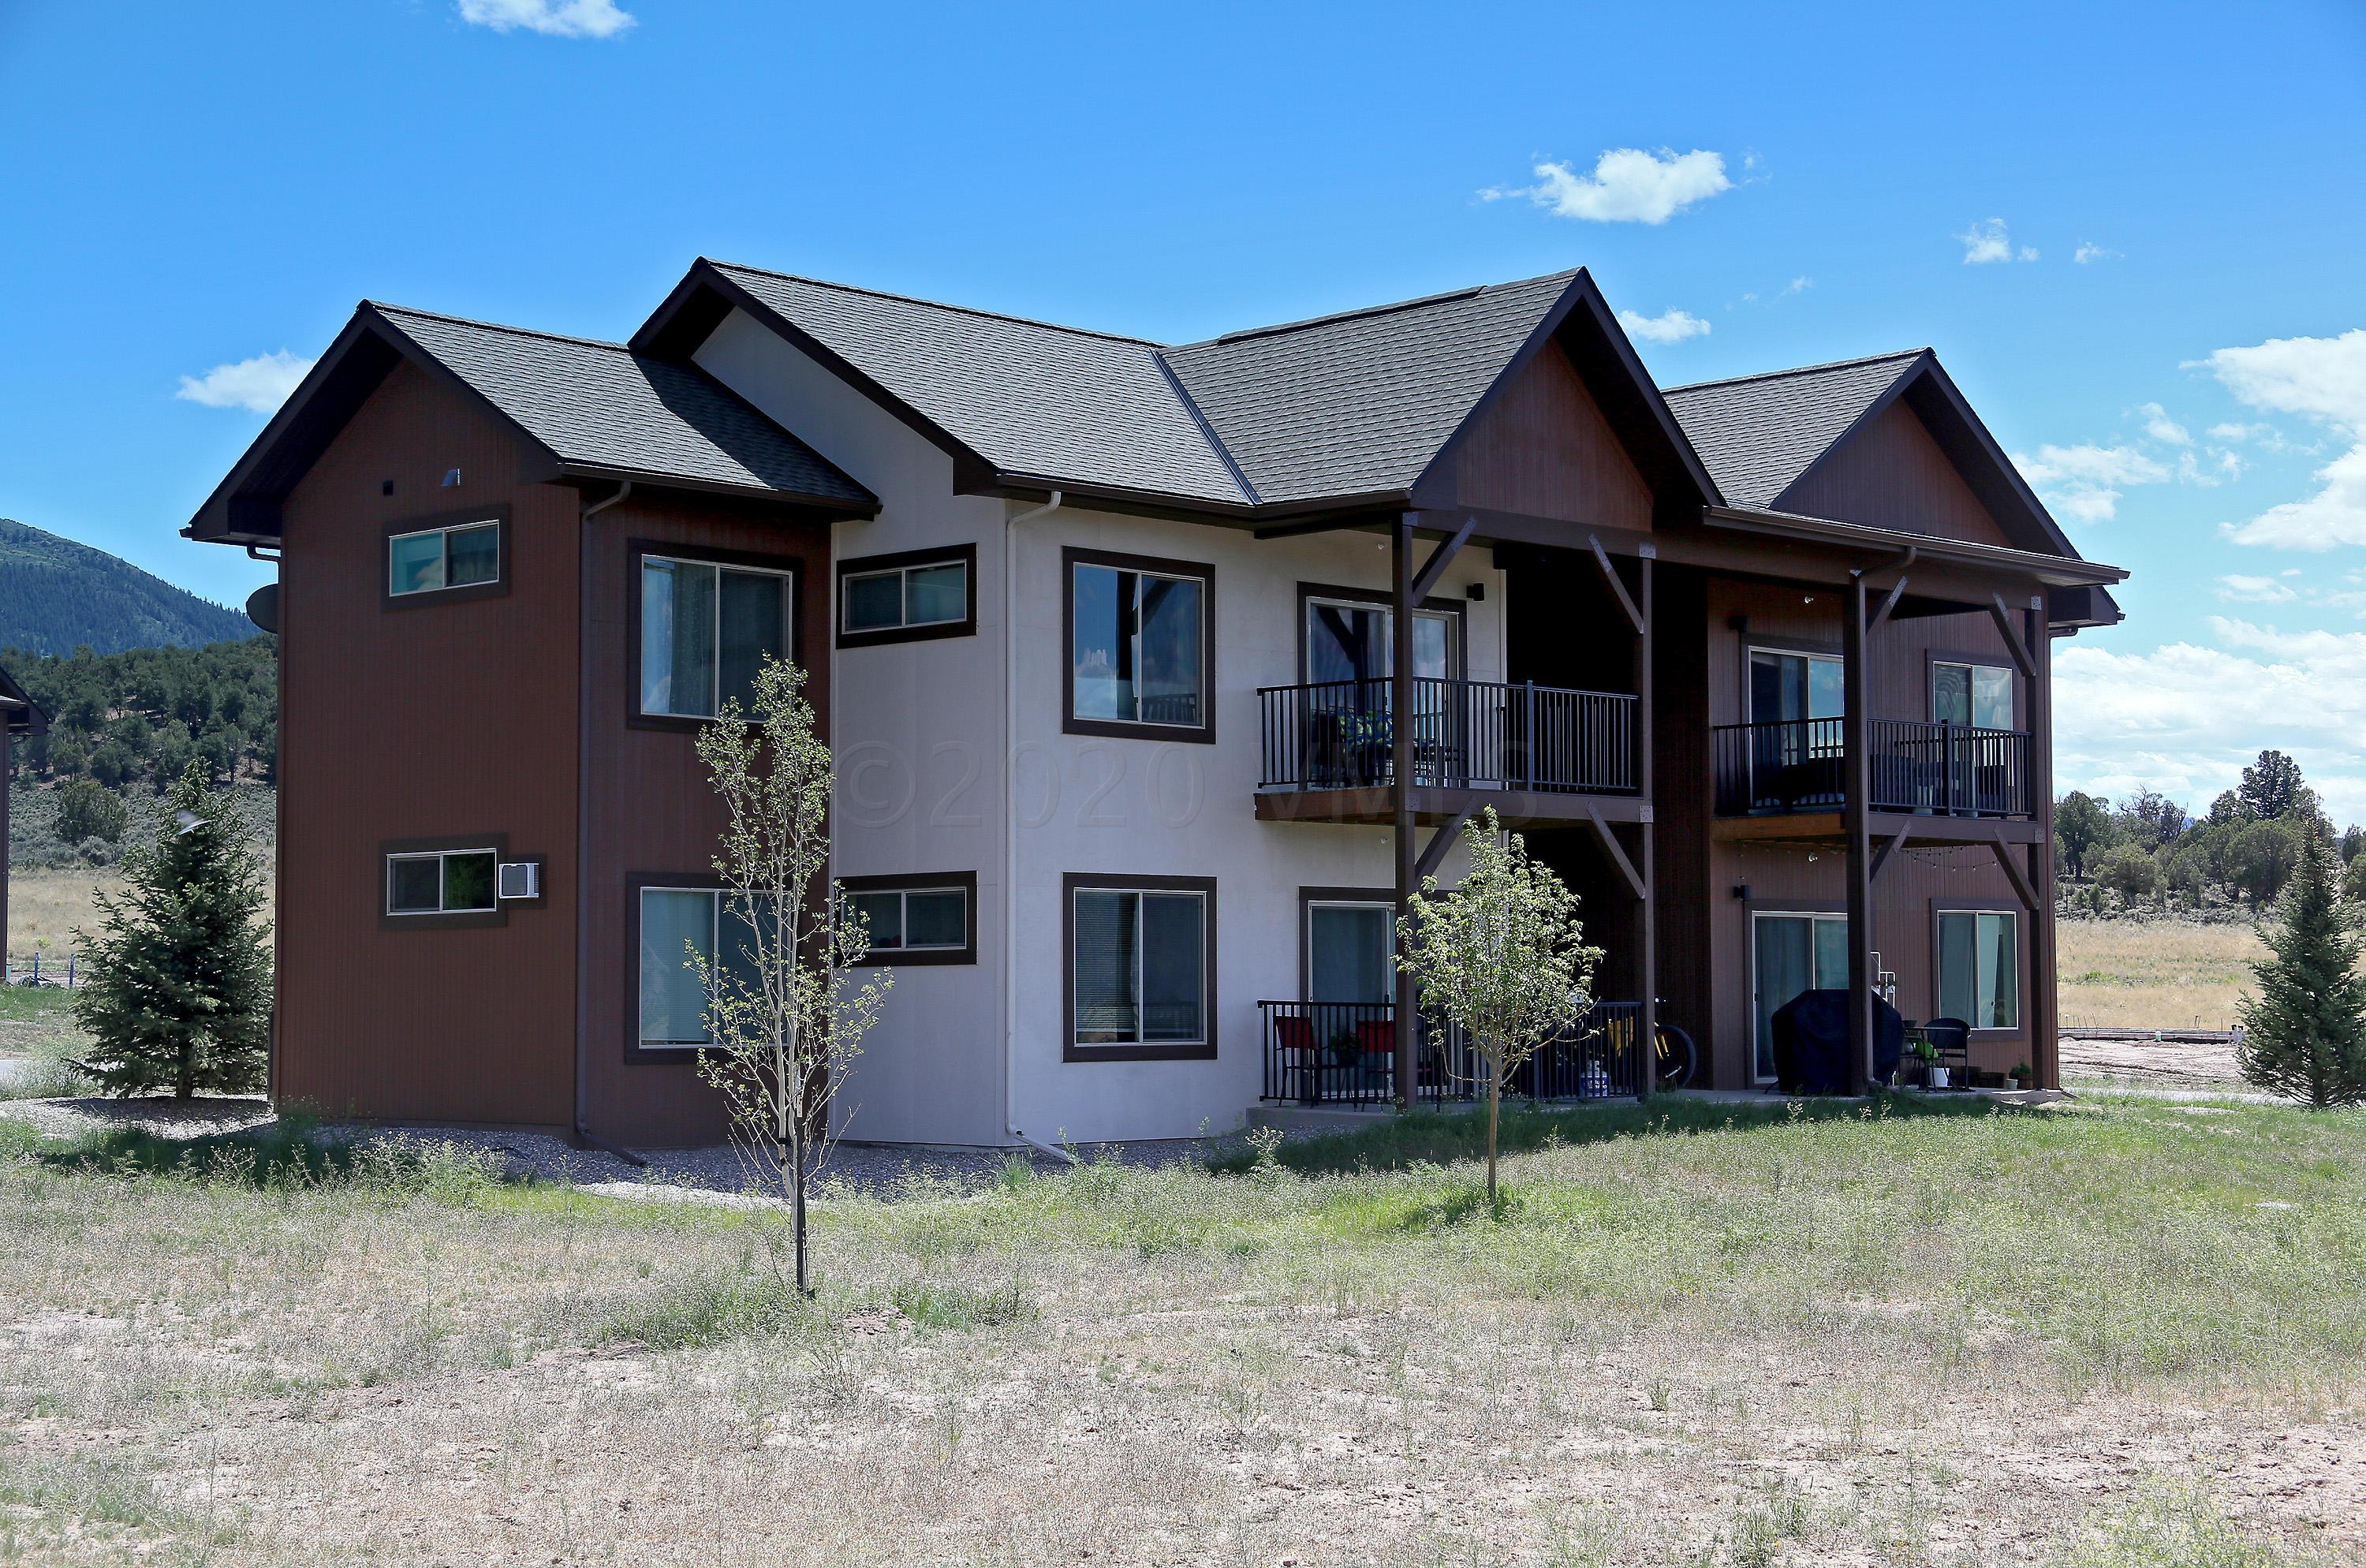 New ground plan with 2-bedrooms/2 bath. Quality-constructed condominium with quartz countertops, tiled showers, stainless-steel appliances and private storage. Ownership also includes 100% access to thousands of acres of open space year-round right out your front door. Photos are of another finished unit (E101). Come discover Upper Buckhorn Valley.Matterport Tour is not actual unit but represents floor plan.